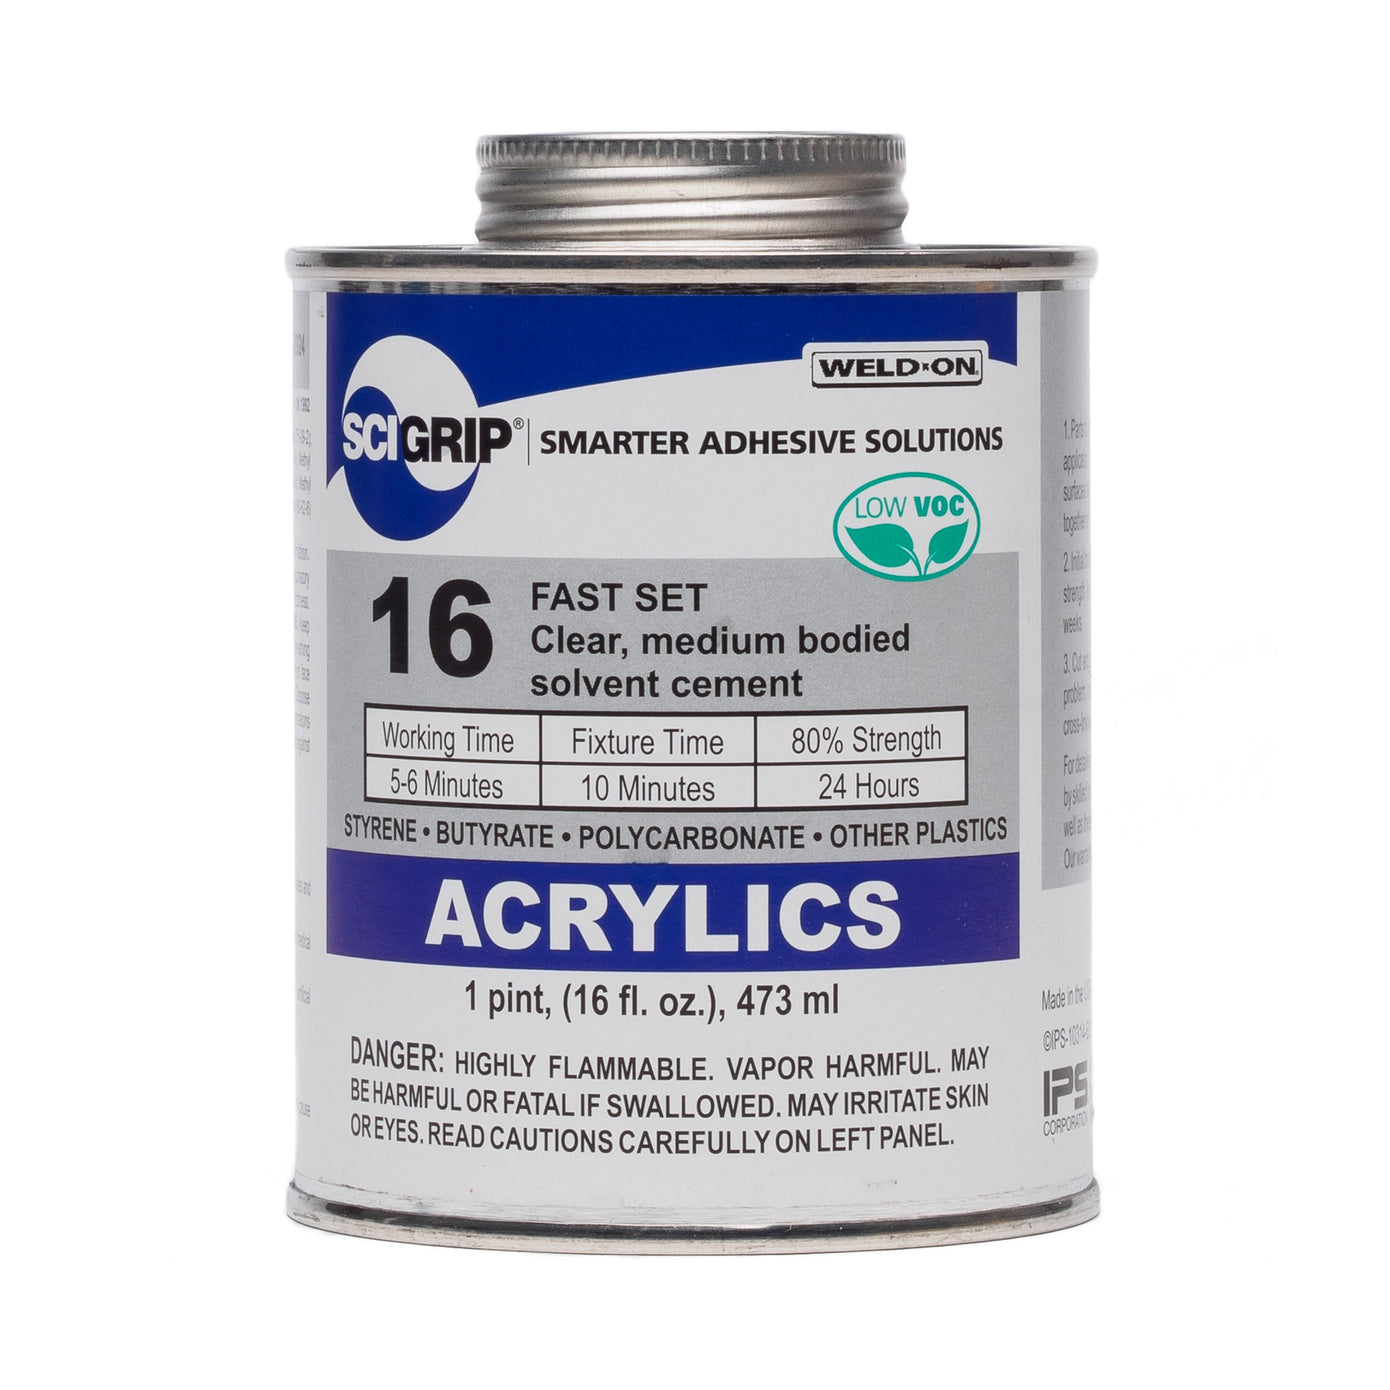 Ips Sci Grip 16 Acrylic Solvent Cement Canal Plastics Center